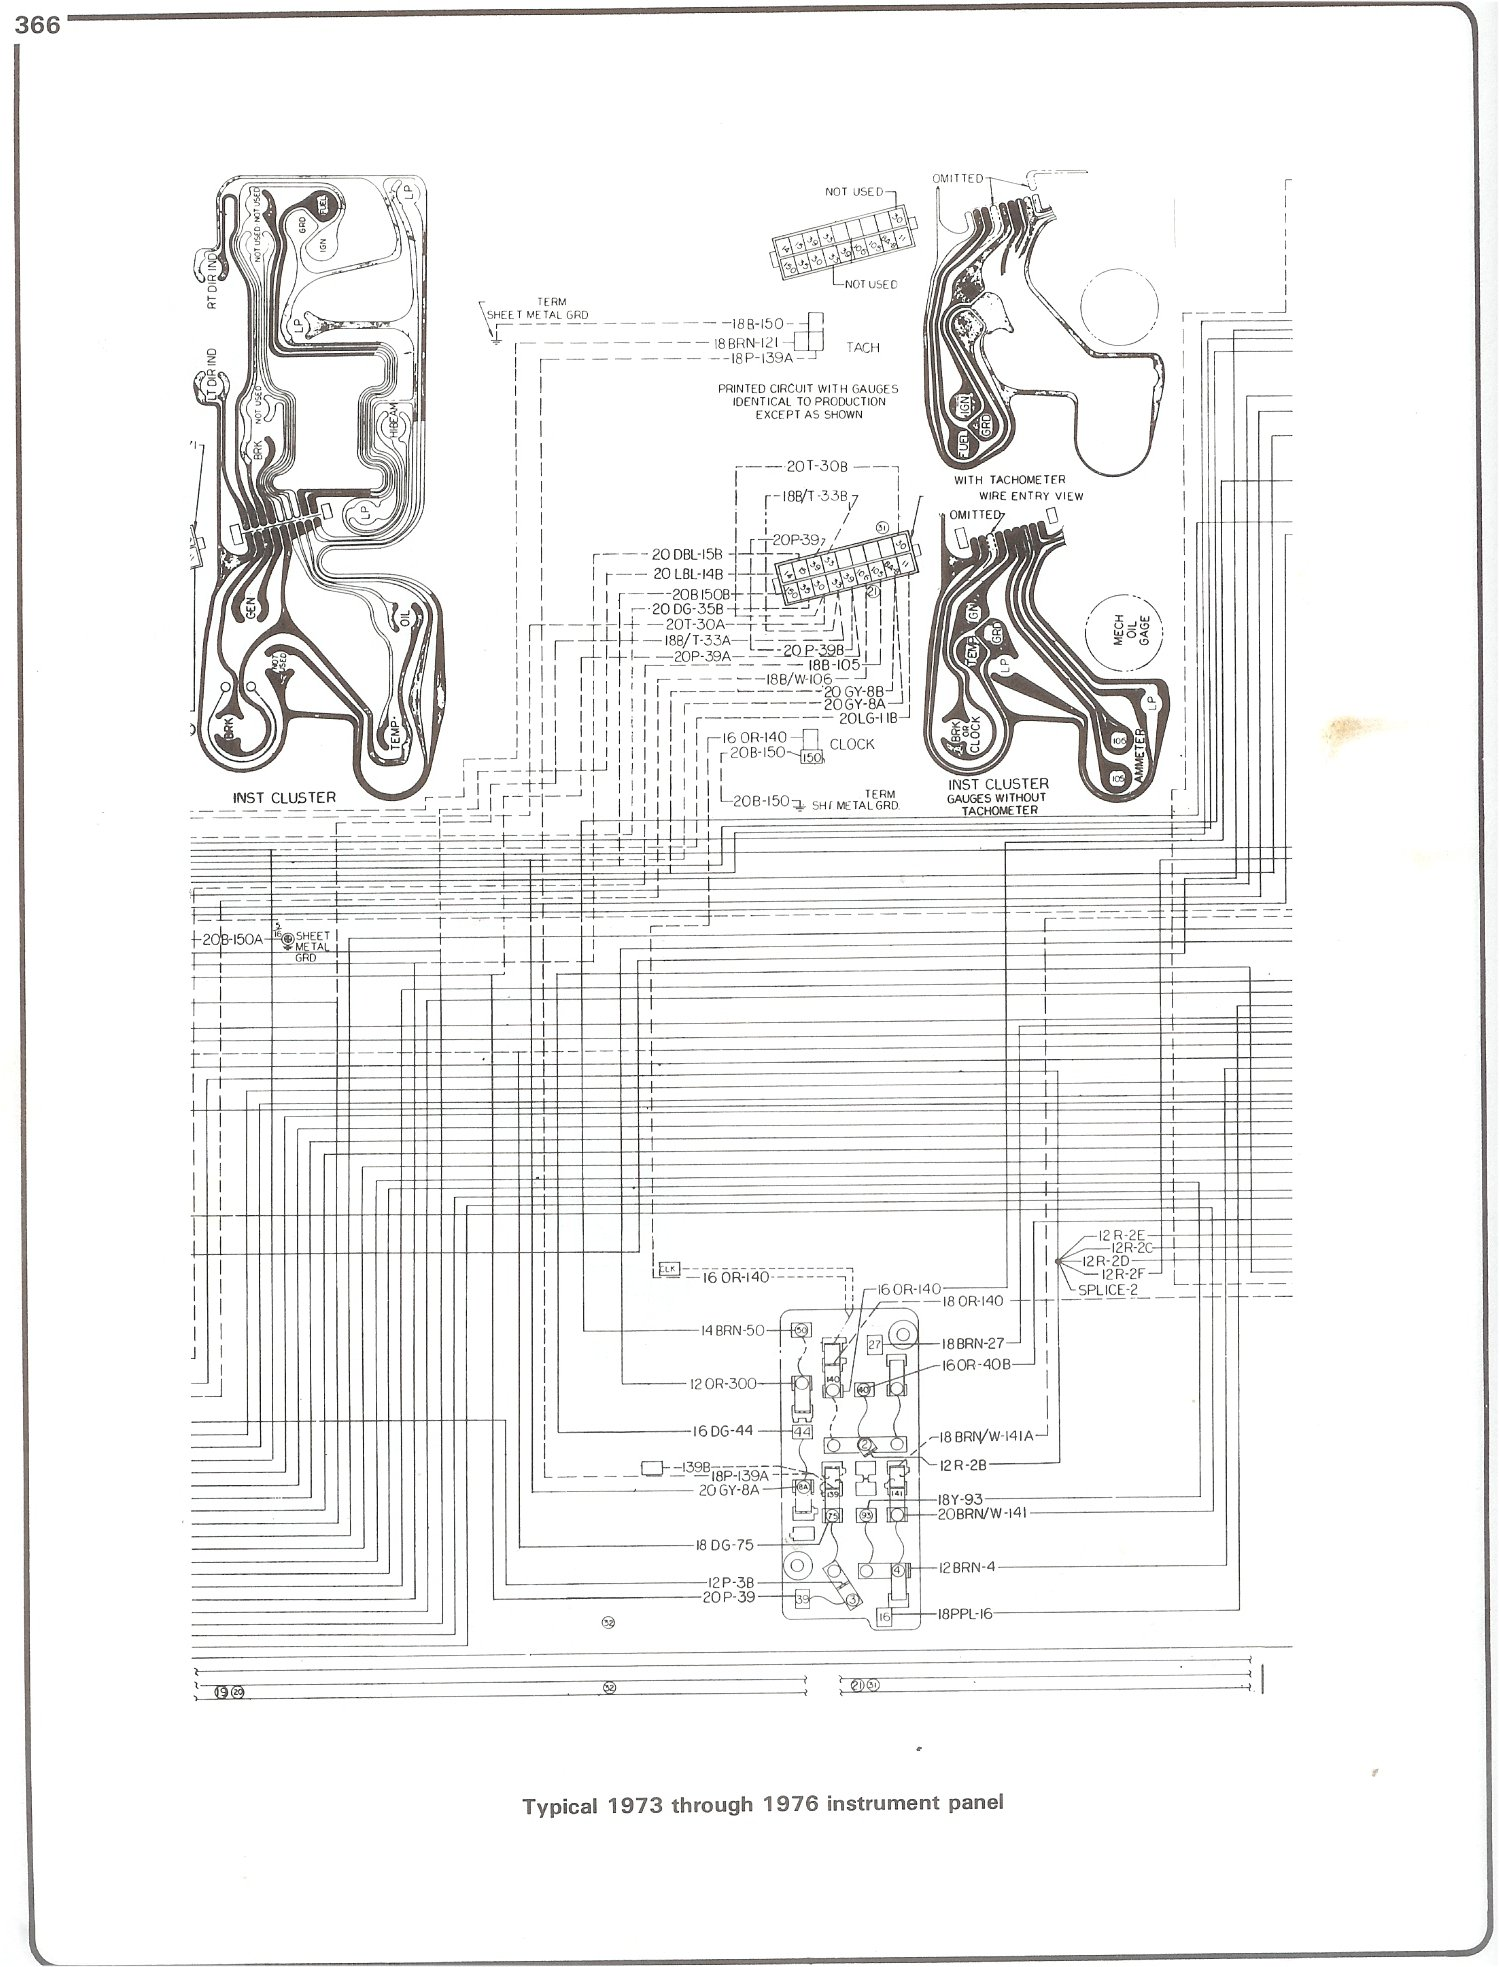 73 76_instrument electrical diagrams chevy only page 2 truck forum 1983 chevy c10 fuse box diagram at creativeand.co